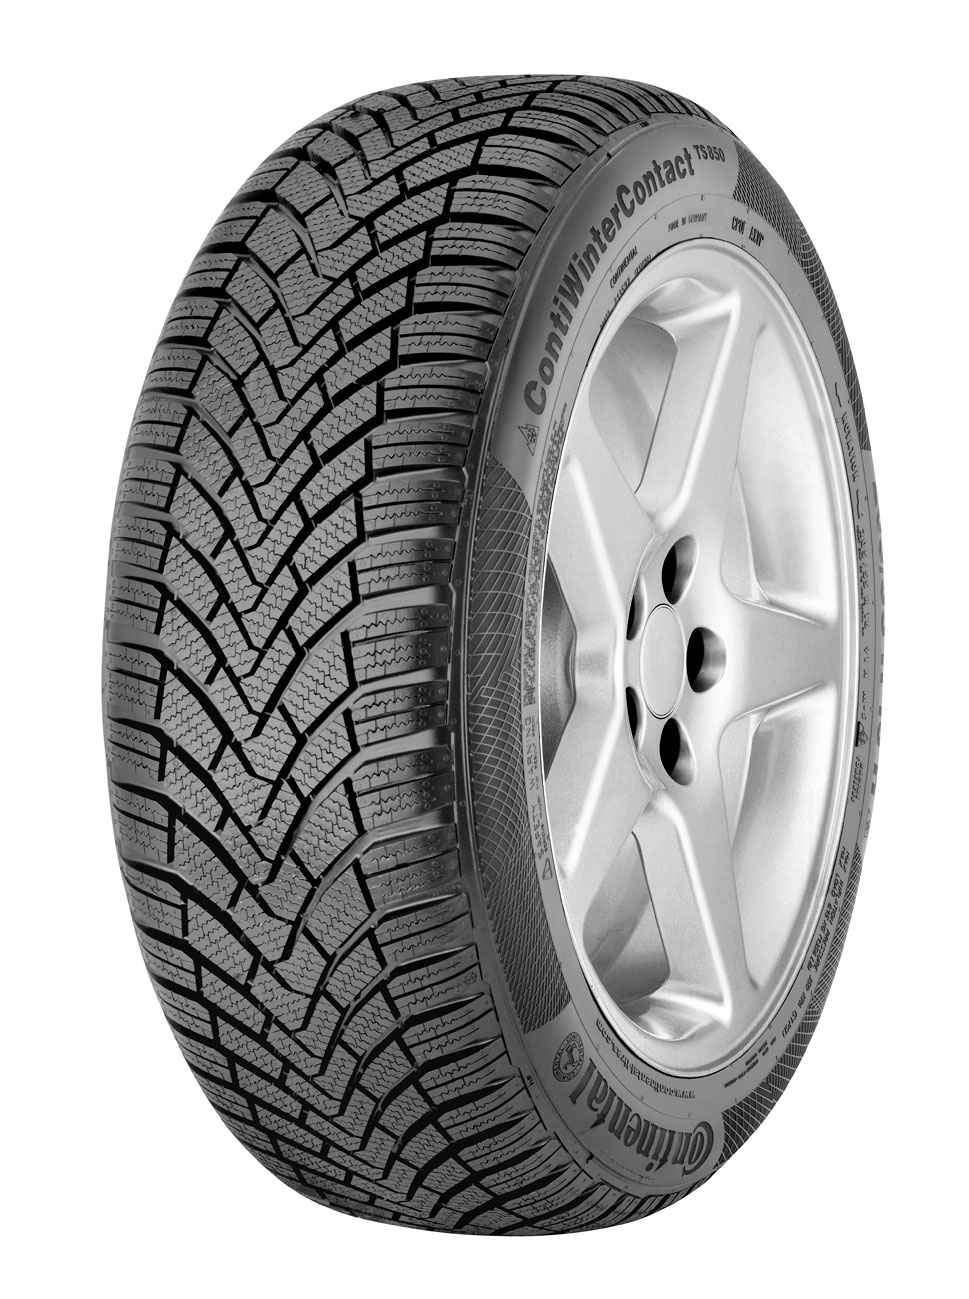 275/40 R20 [106] V Conti Winter Contact Winter TS850P XL FR - CONTINENTAL